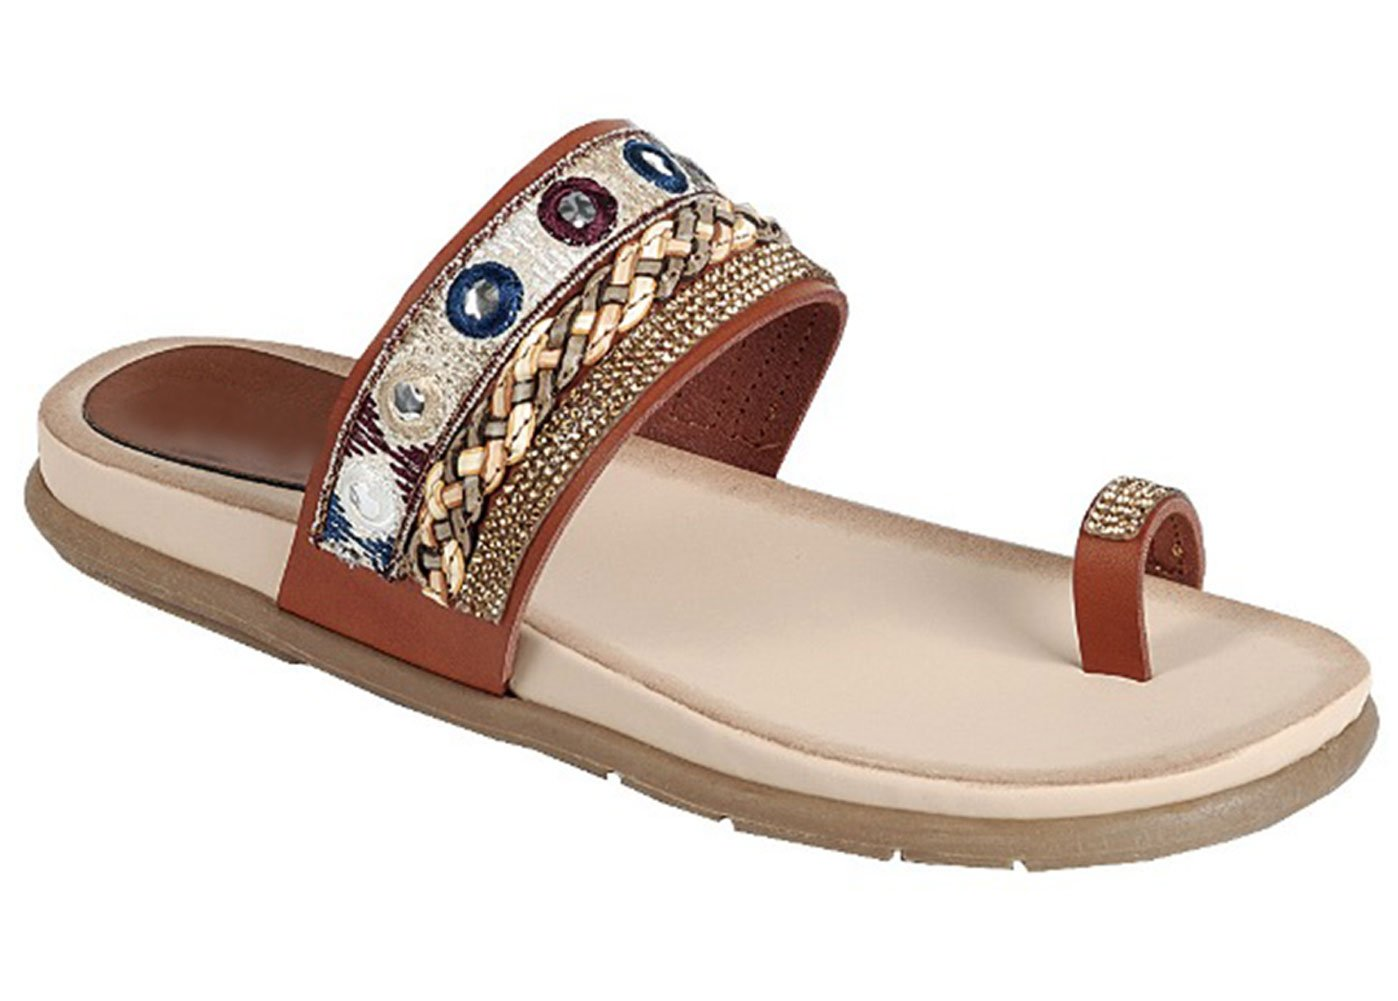 Top Tan Beaded Indian Ethnic Hippy Vegan Leather Flip-Flop Small Wedge Round Toe Low Heel FitFlop Cushioned Casual Beach Flat Bohemian Barefoot Summer Sandal for Sale Women Teen Girl (Size 6.5, Tan)